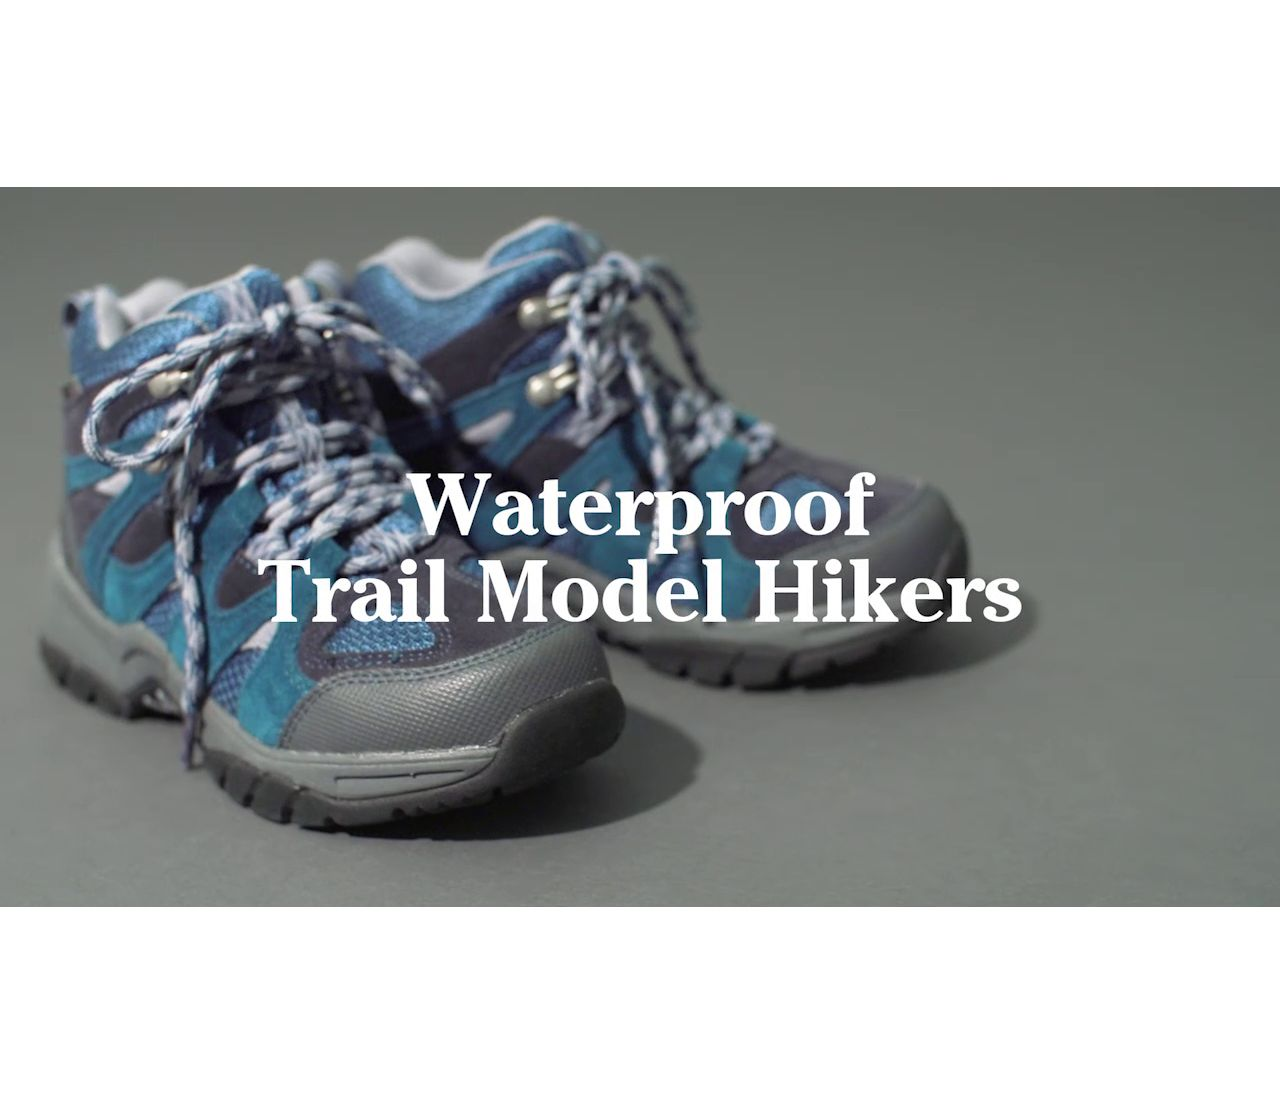 Video: Trail Model Hiker Waterproof Kids